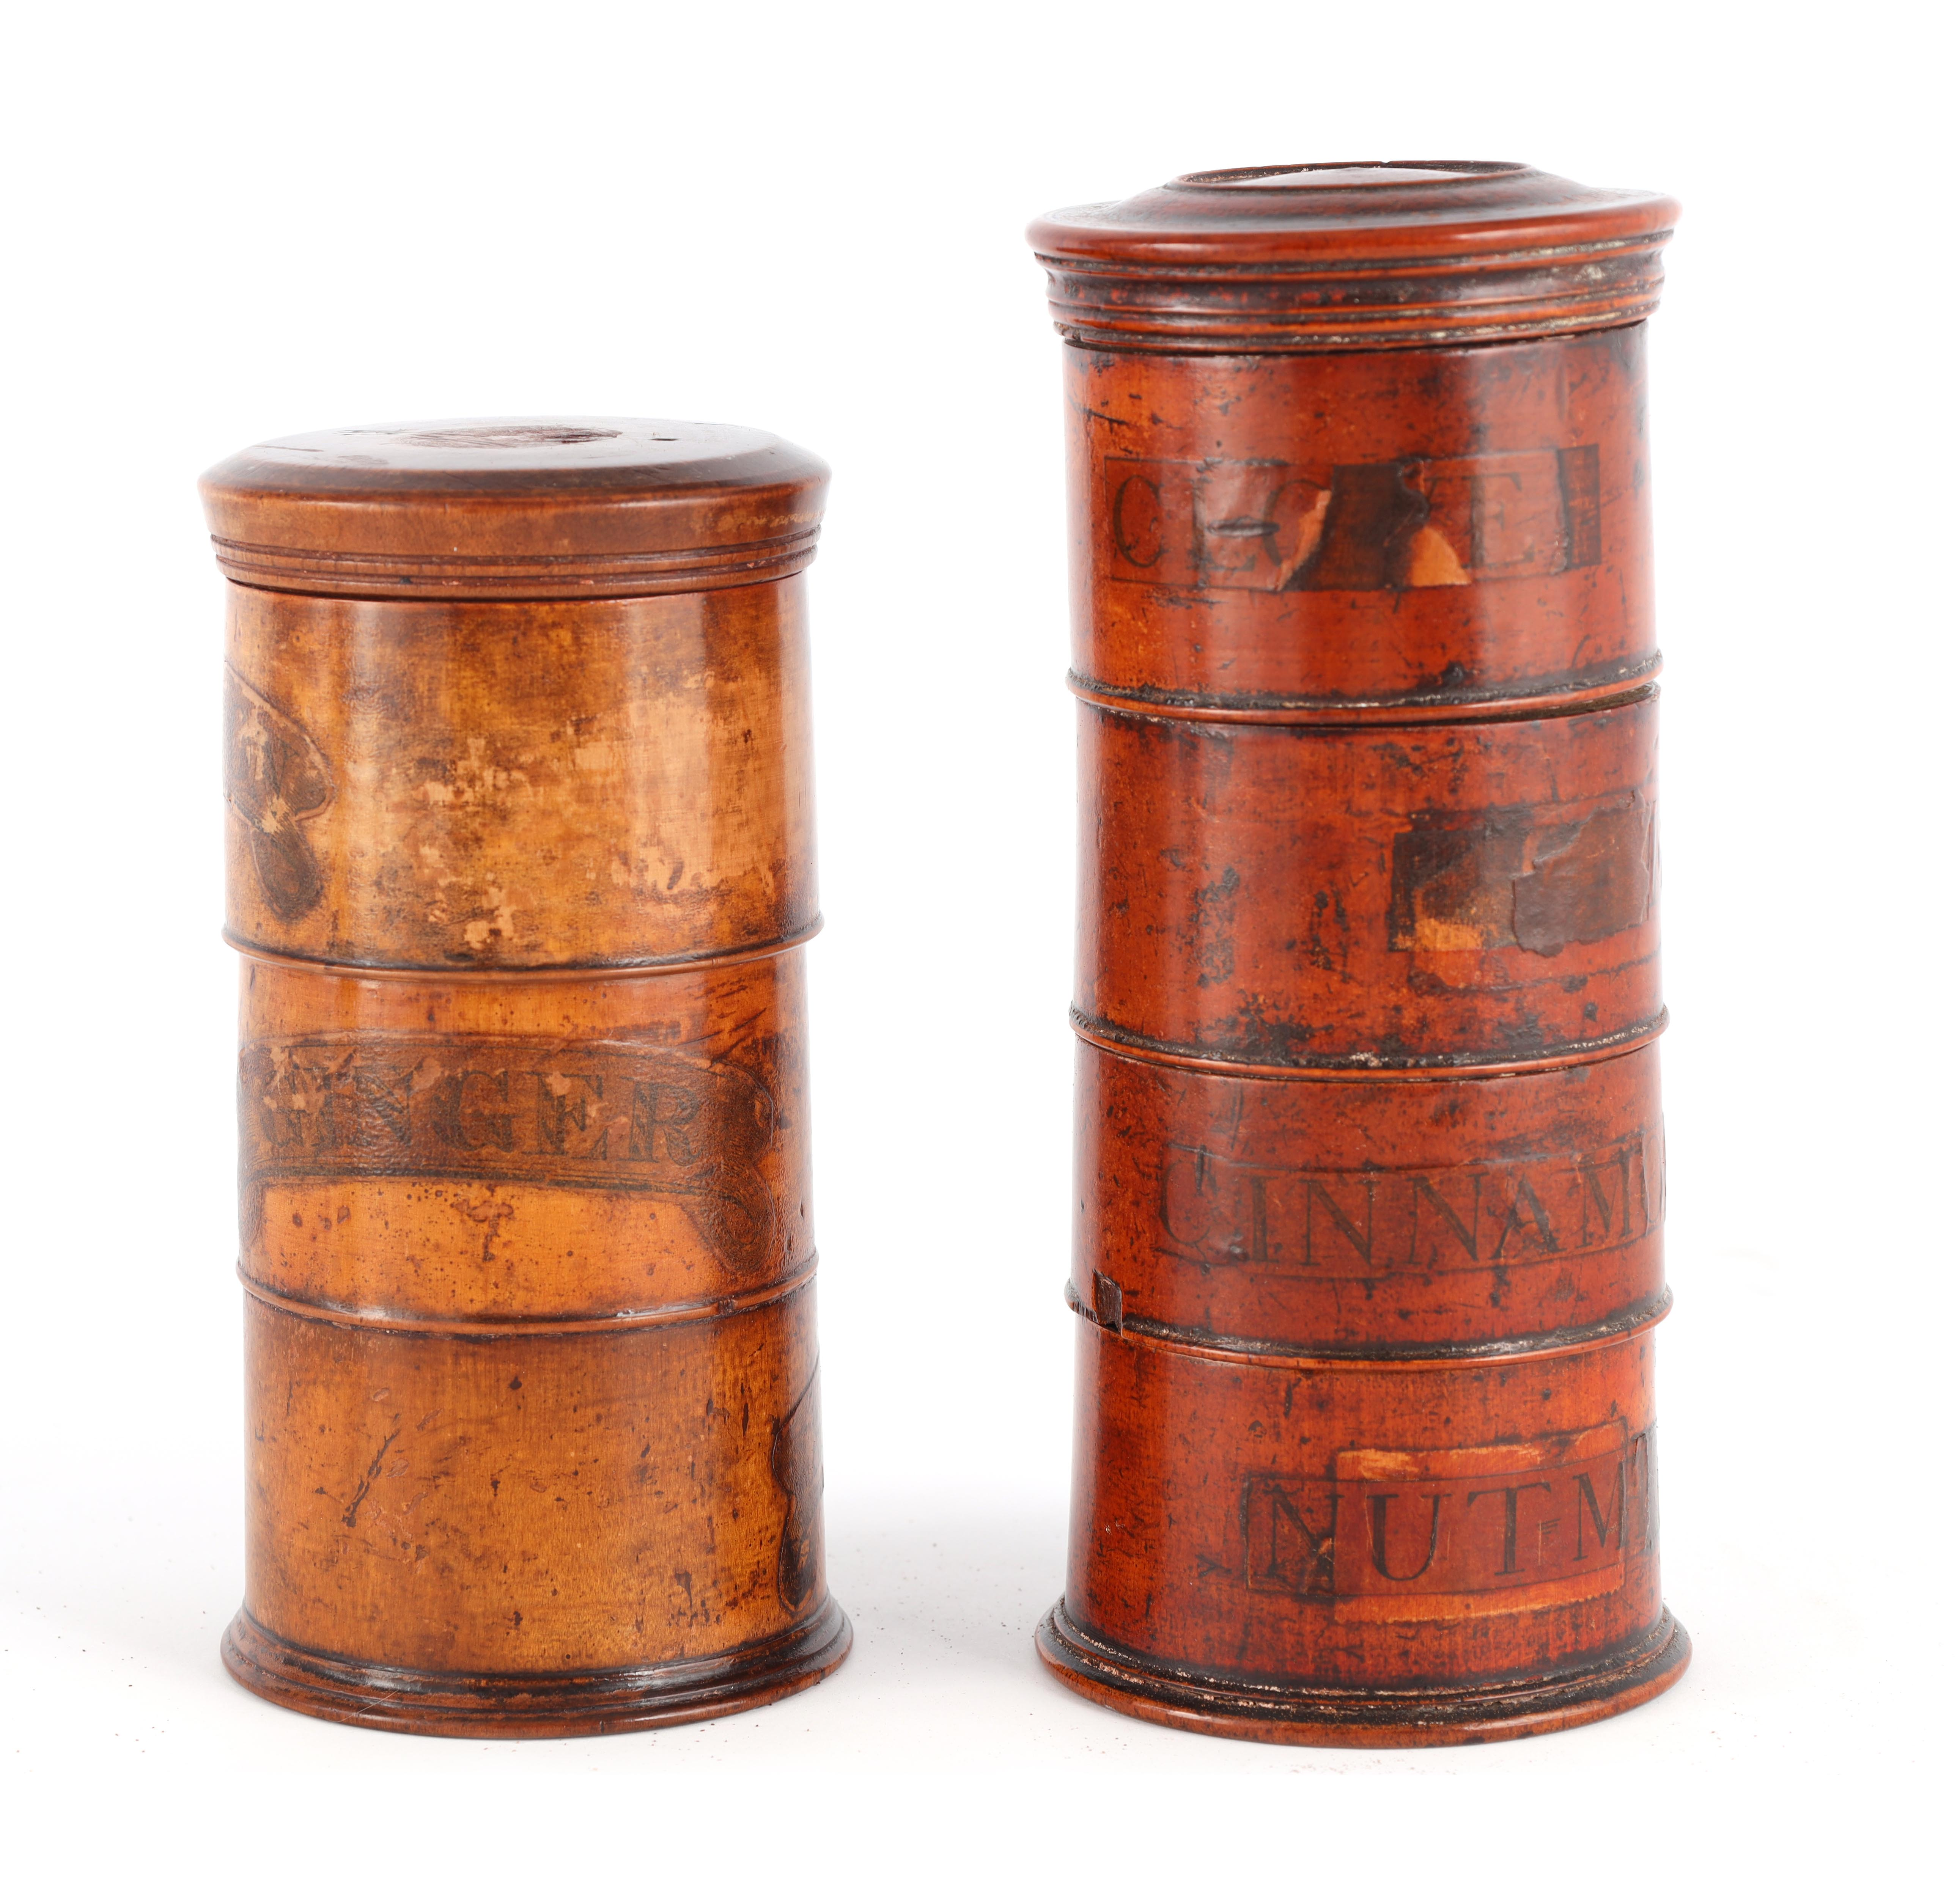 TWO EARLY 19TH CENTURY SYCAMORE TREEN SPICE TOWERS with original labels, the three stack 15cm